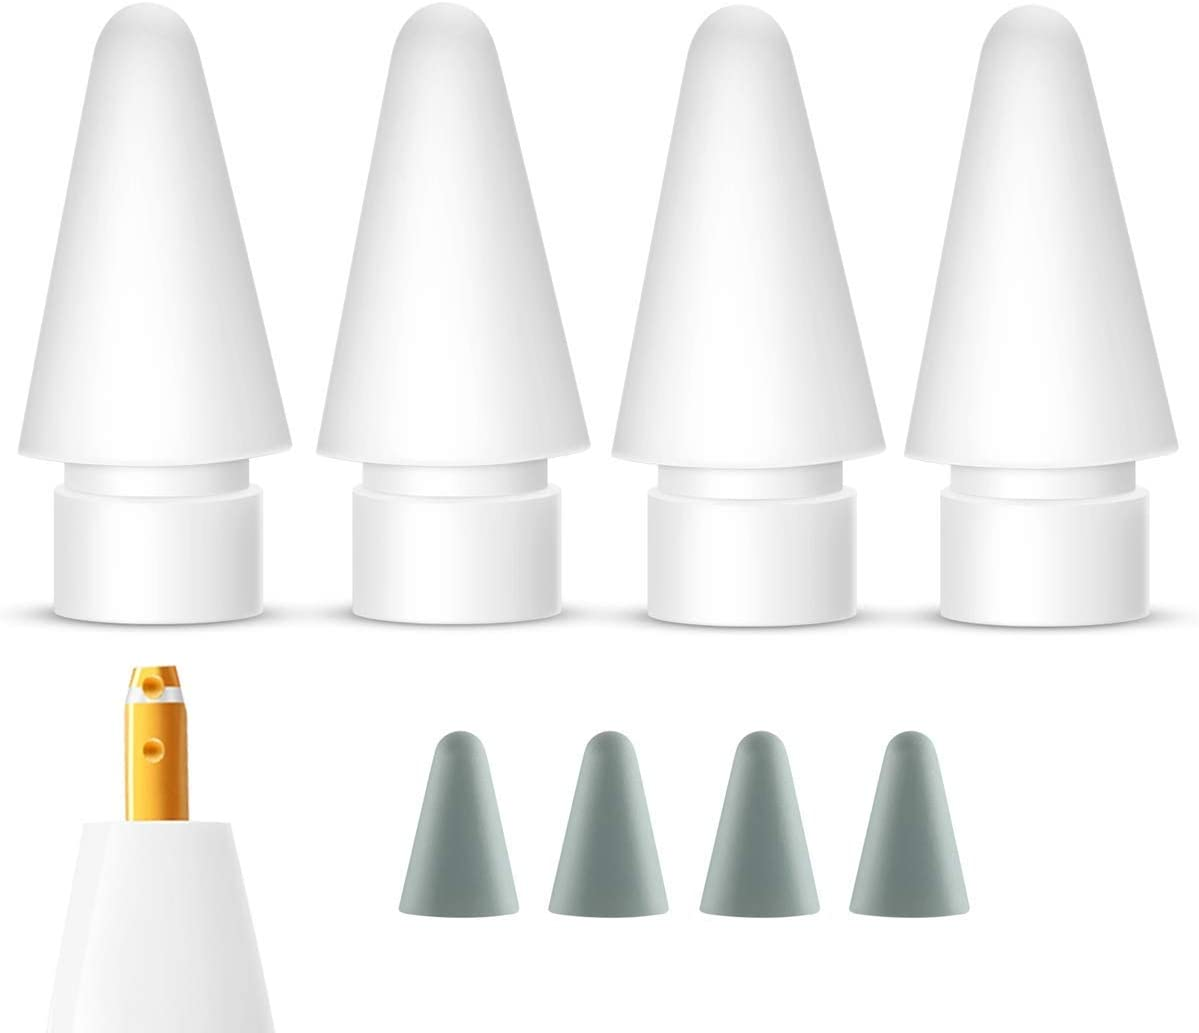 Pencil Tips Replacement for Apple Pencil 1st & 2nd Generation(4 Pack), Compatible with iPencil iPad Pro Nibs and Tip Protector Cover (4 Pack)